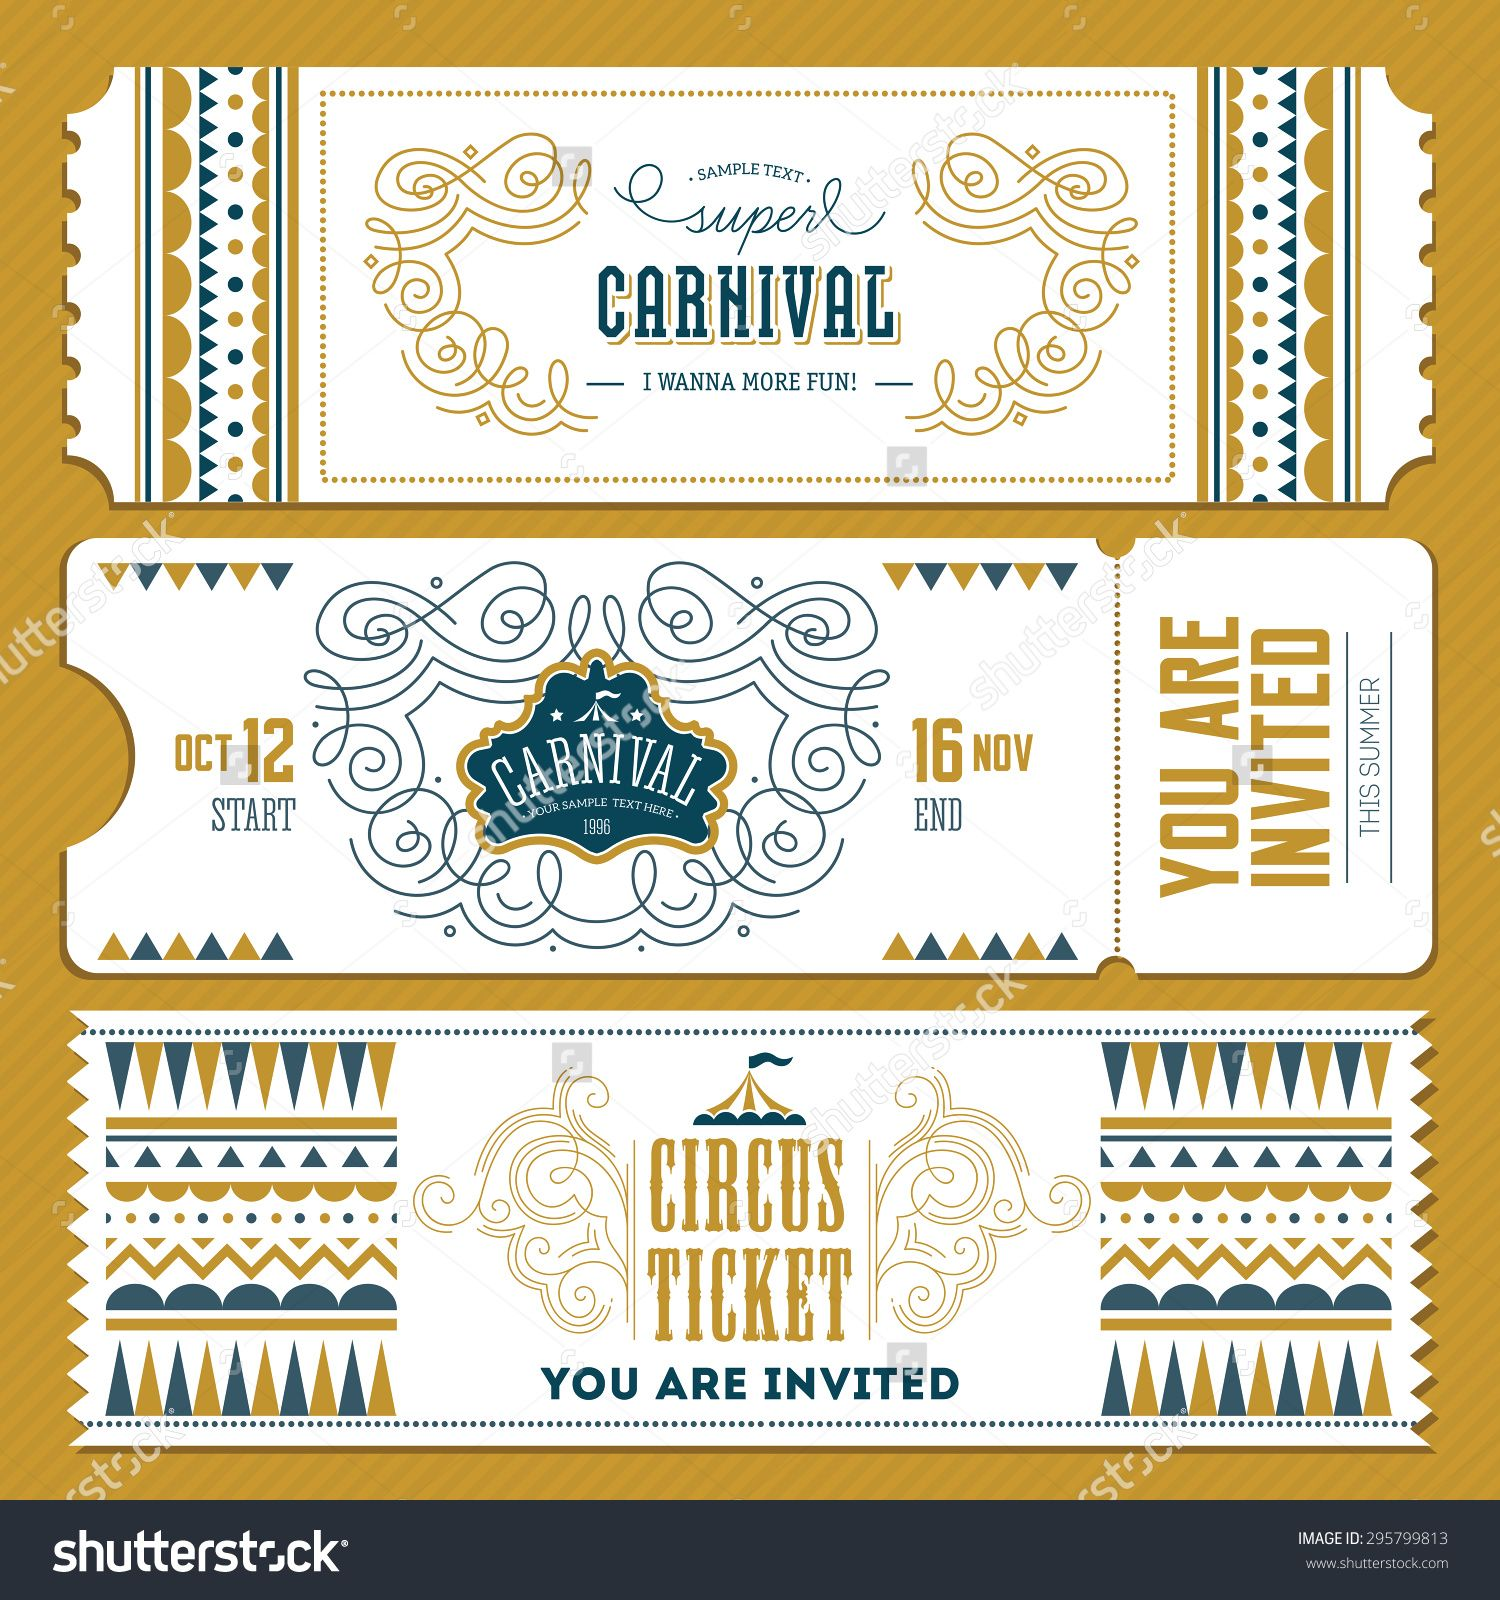 Stock vector vintage circus banner collection ticket invitation stock vector vintage circus banner collection ticket invitation vector illustration 295799813g 15001600 stopboris Images